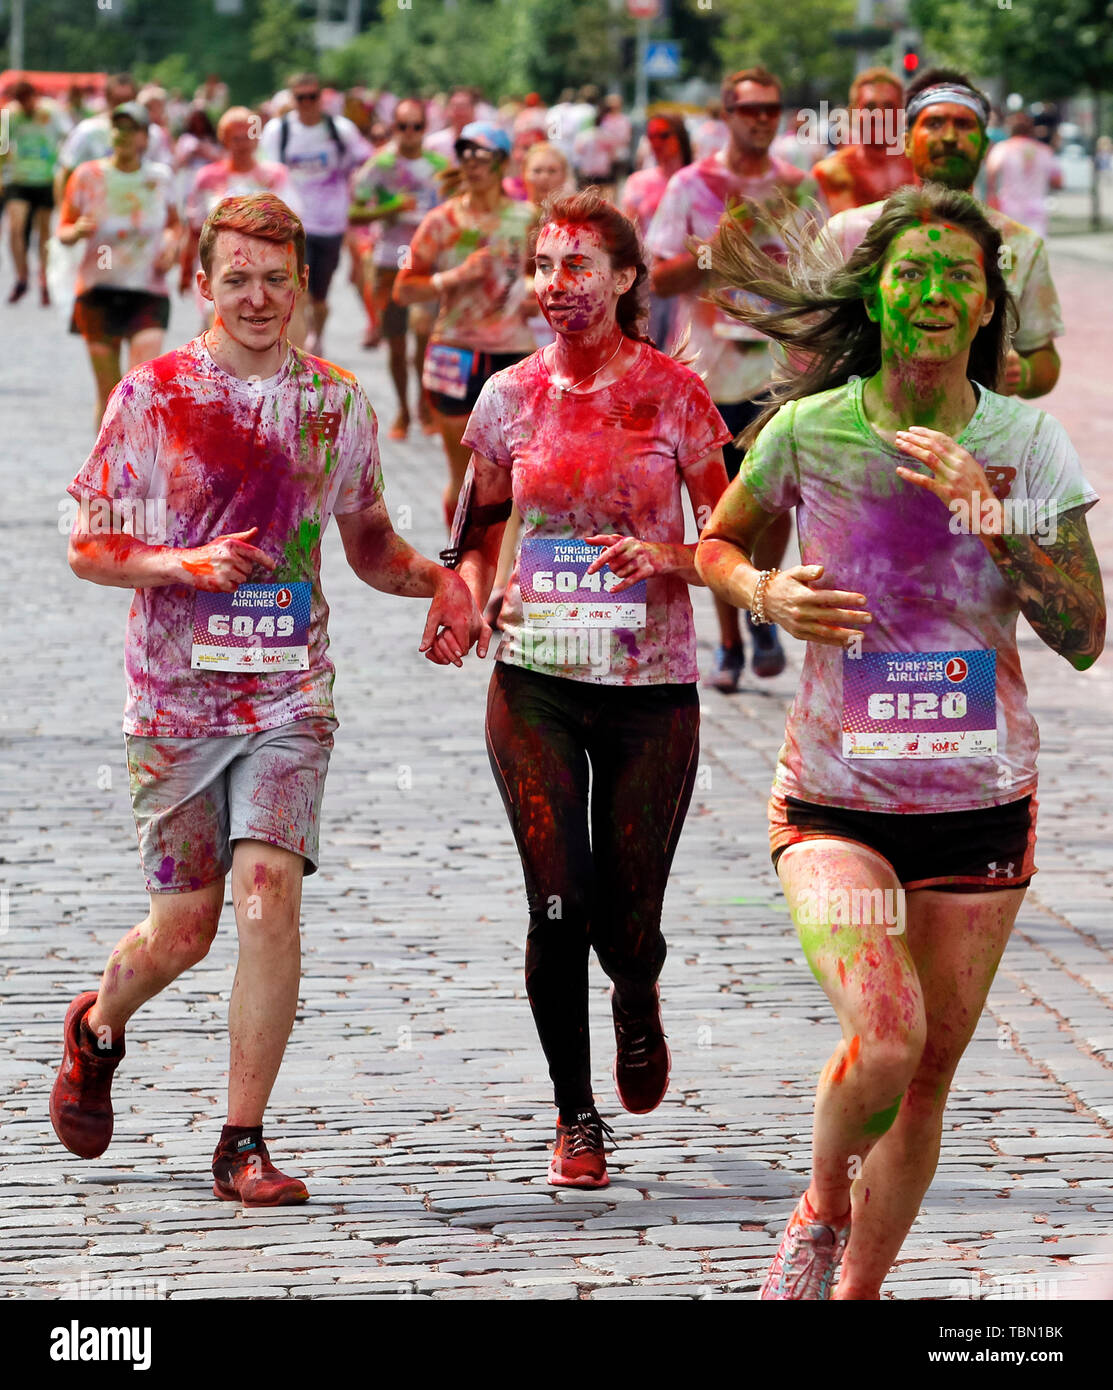 Participants run while showered with colours during the event. The Color Run, also known as 'the happiest 5,000 meters on the planet', is an event series and paint race, its first event was in the United States in January 2012 since then the run has spread across the globe leaving a trail of color and happy runners across different continents and countries. The untimed event has no winners or prizes, but runners are showered with colored powder, made of food-grade corn starch, at stations along the run. In Ukrainian capital the first time Kyiv Color Run started in 2014. - Stock Image